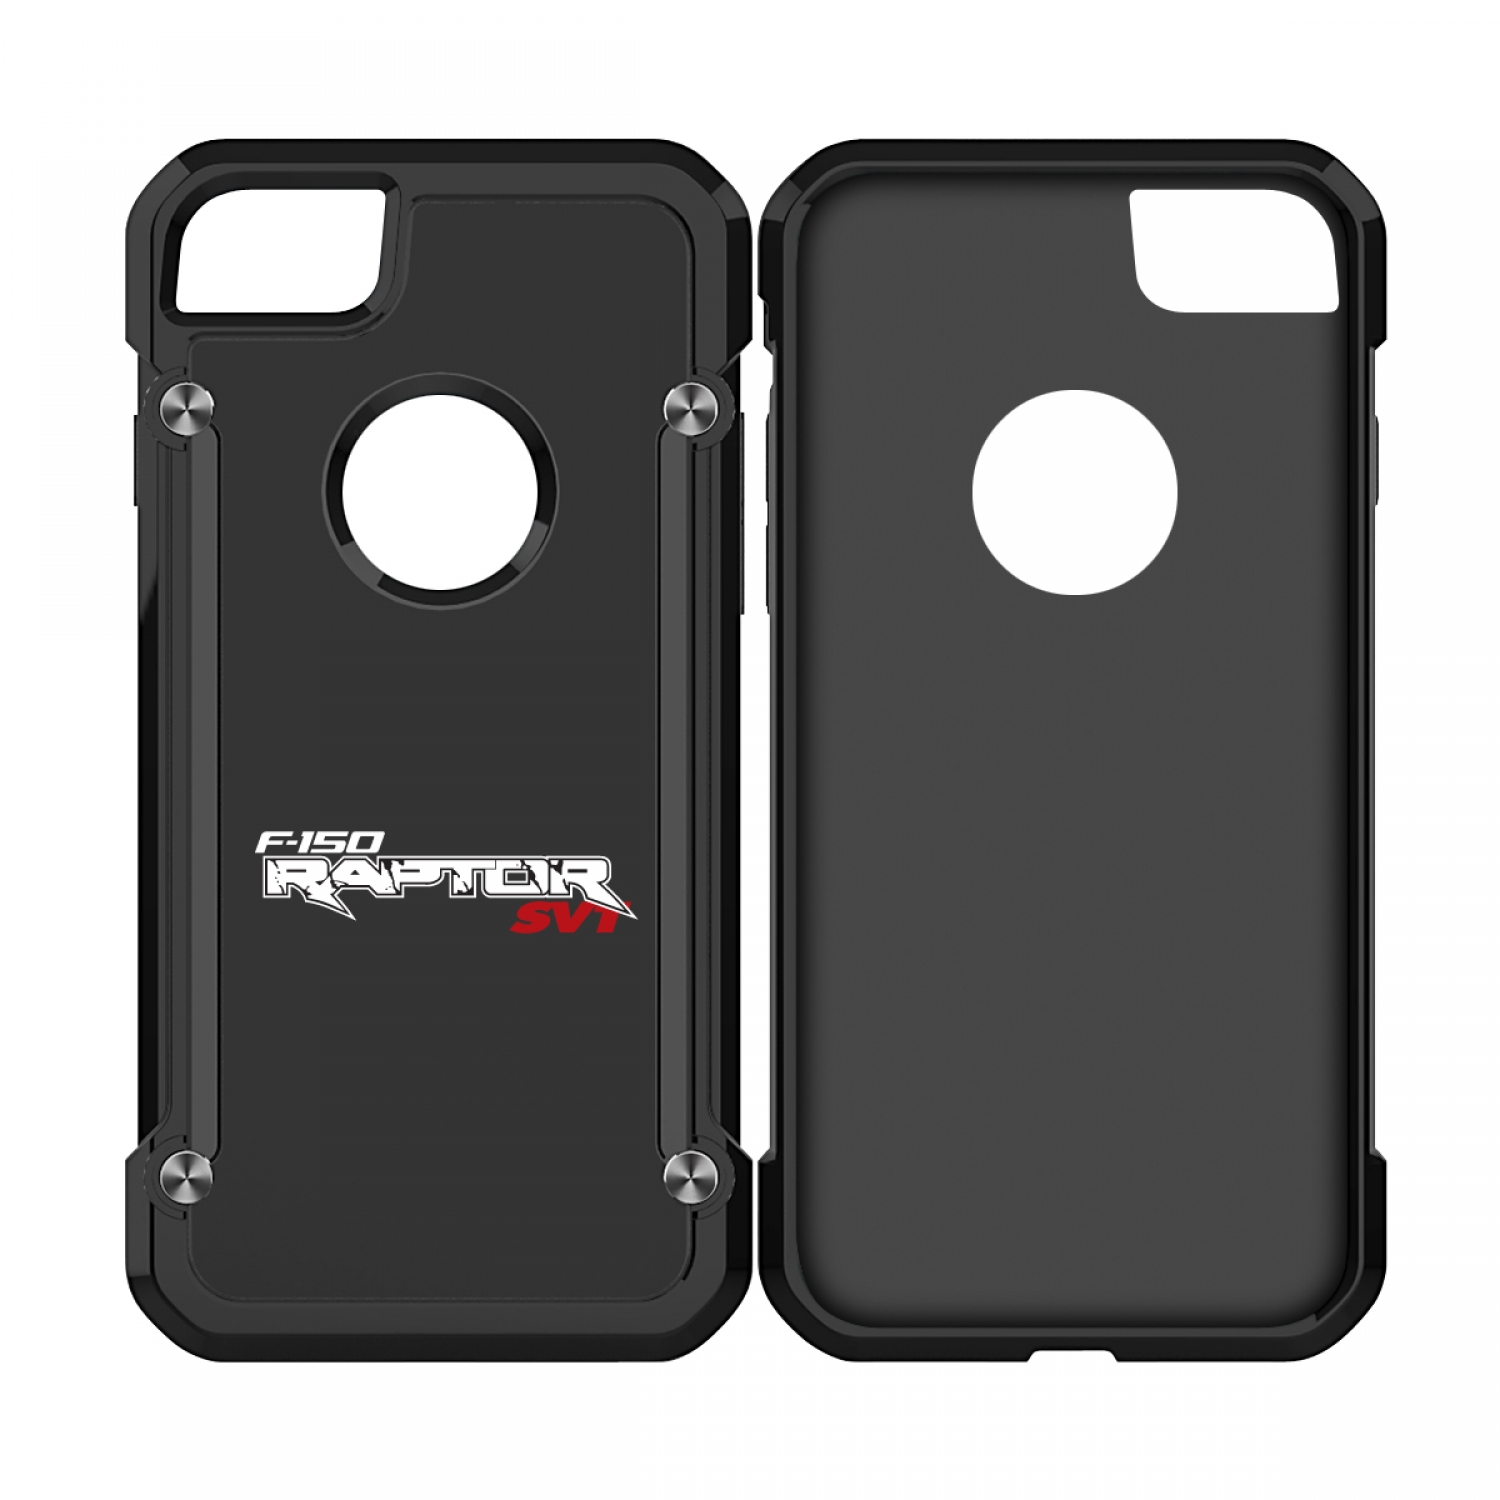 Ford F-150 Raptor SVT iPhone 7 iPhone 8 TPU Shockproof Black Cell Phone Case